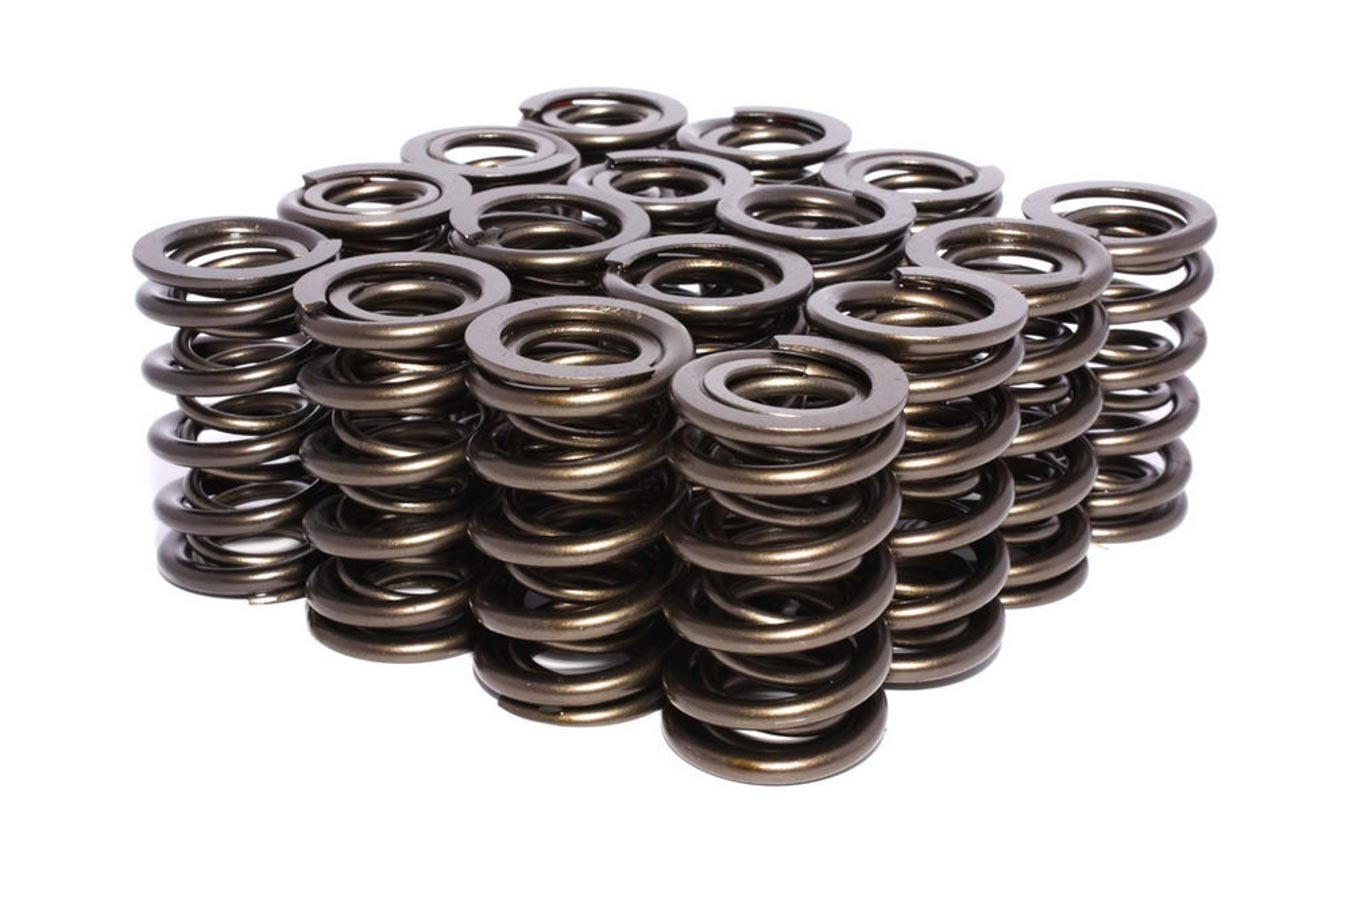 Valve Spring, Race Street, Dual Spring, 408 lb/in Spring Rate, 1.040 in Coil Bind, 1.300 in OD, Set of 16